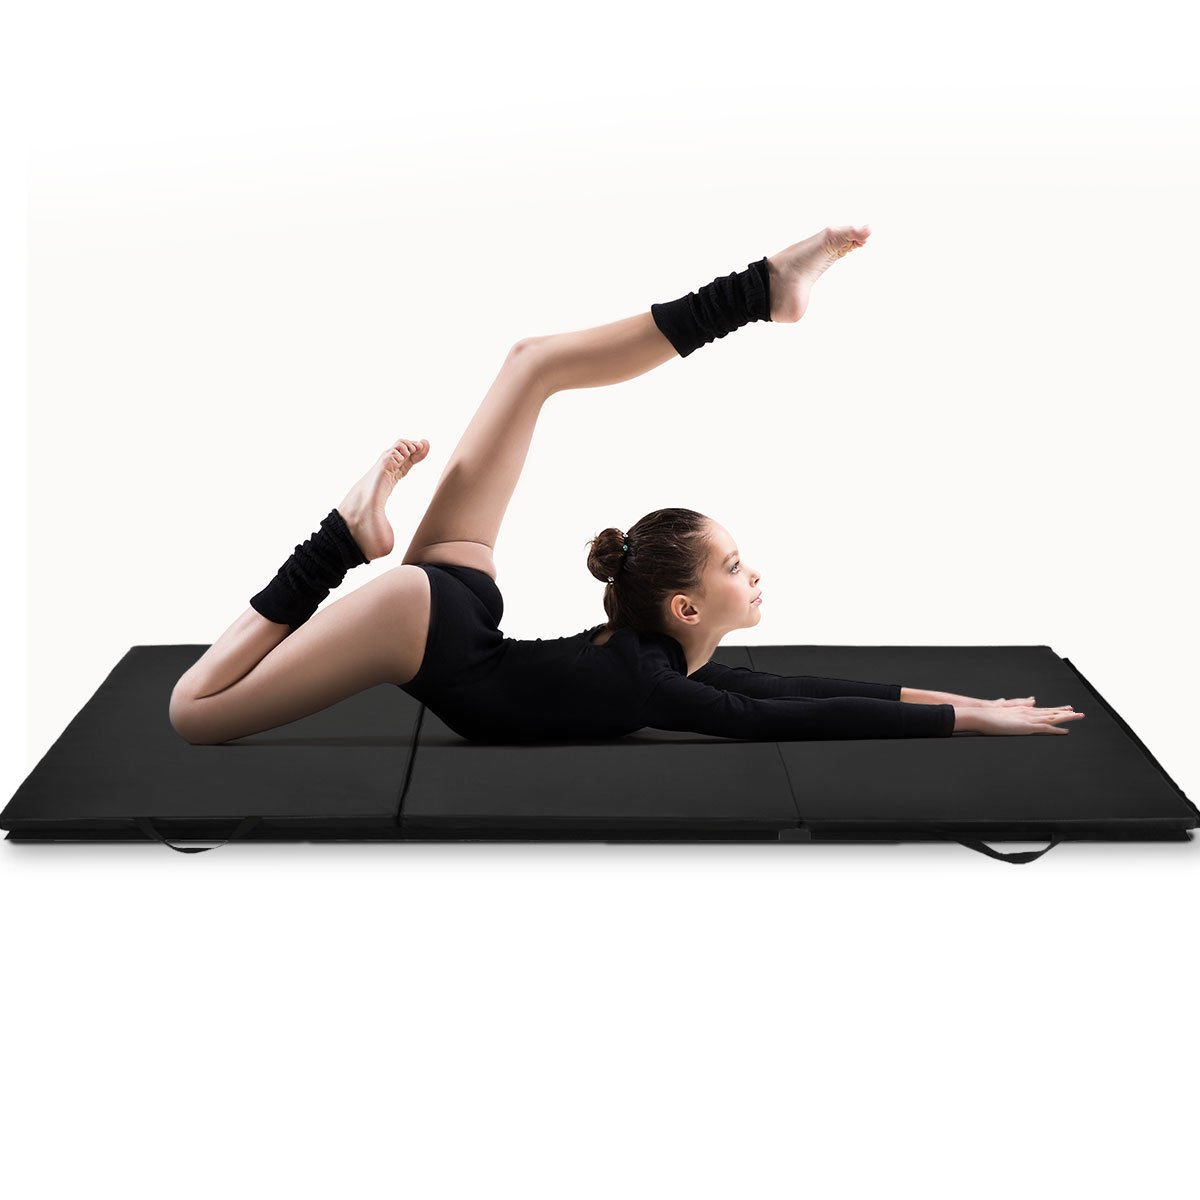 Giantex 6' x 4' Tri-Fold Gymnastics Mat Thick Folding Panel for Gym Fitness Exercise (Black) by Giantex (Image #2)